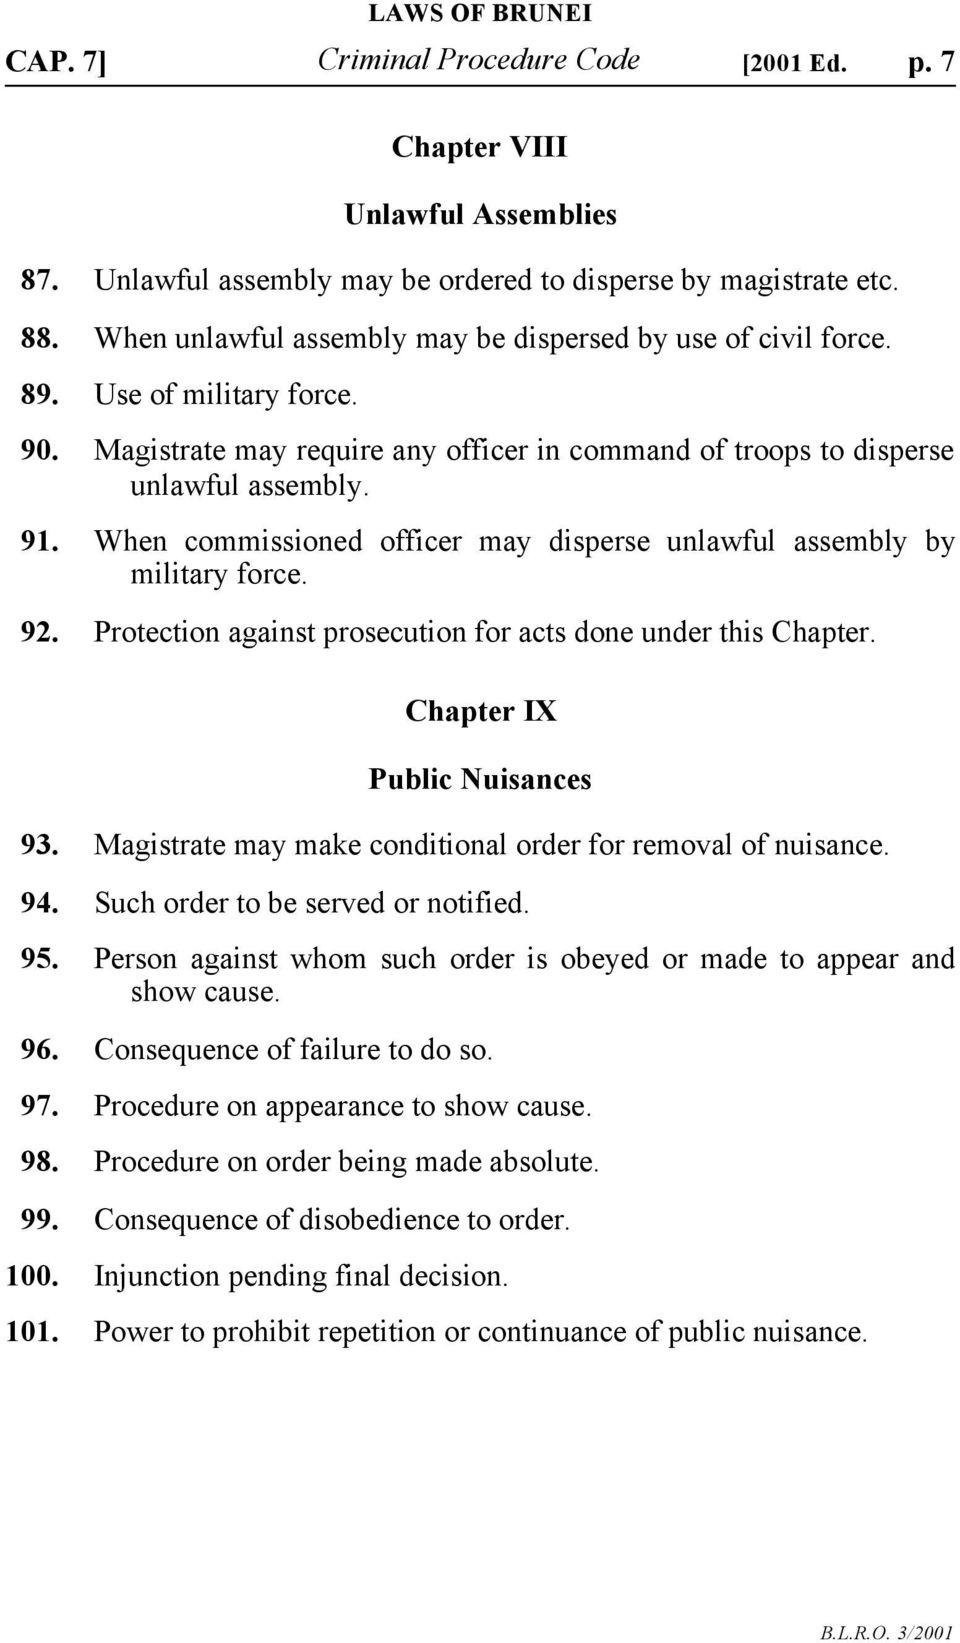 Protection Against Prosecution For Acts Done Under This Chapter IX Public Nuisances 93